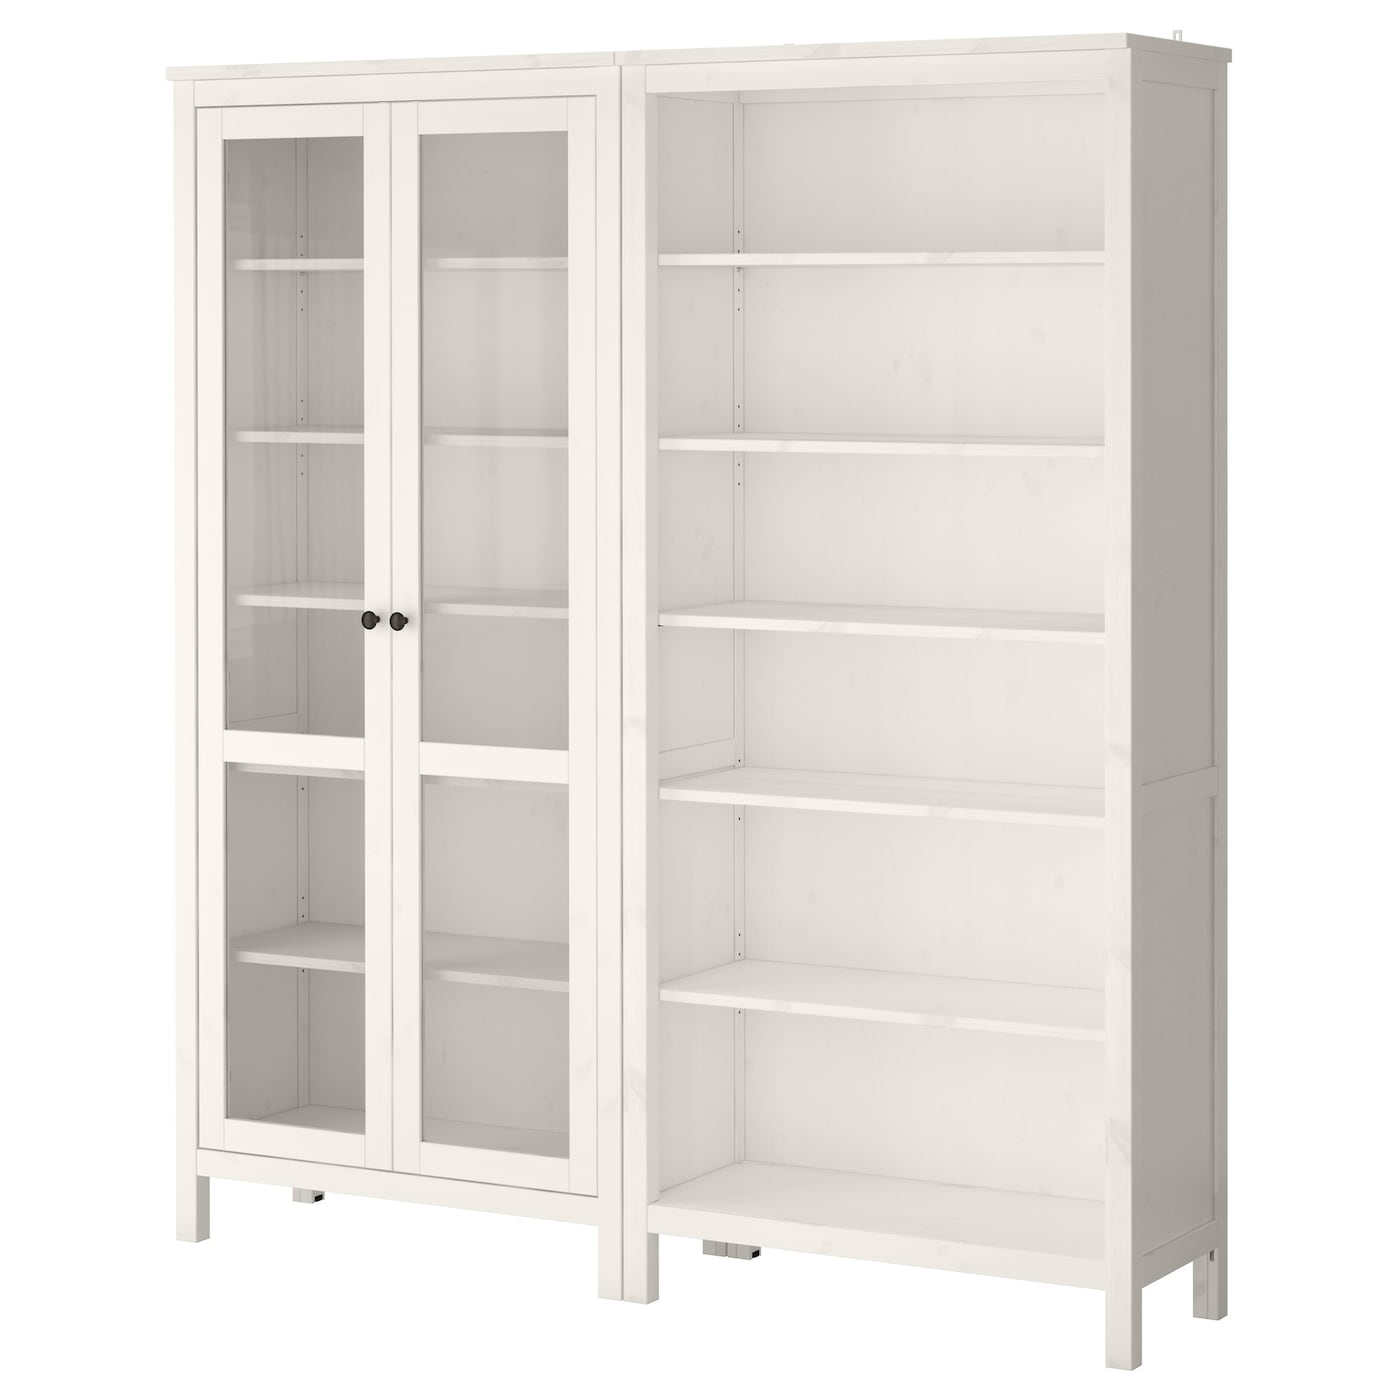 IKEA HEMNES Storage Combination W Glass Doors Solid Wood Has A Natural Feel